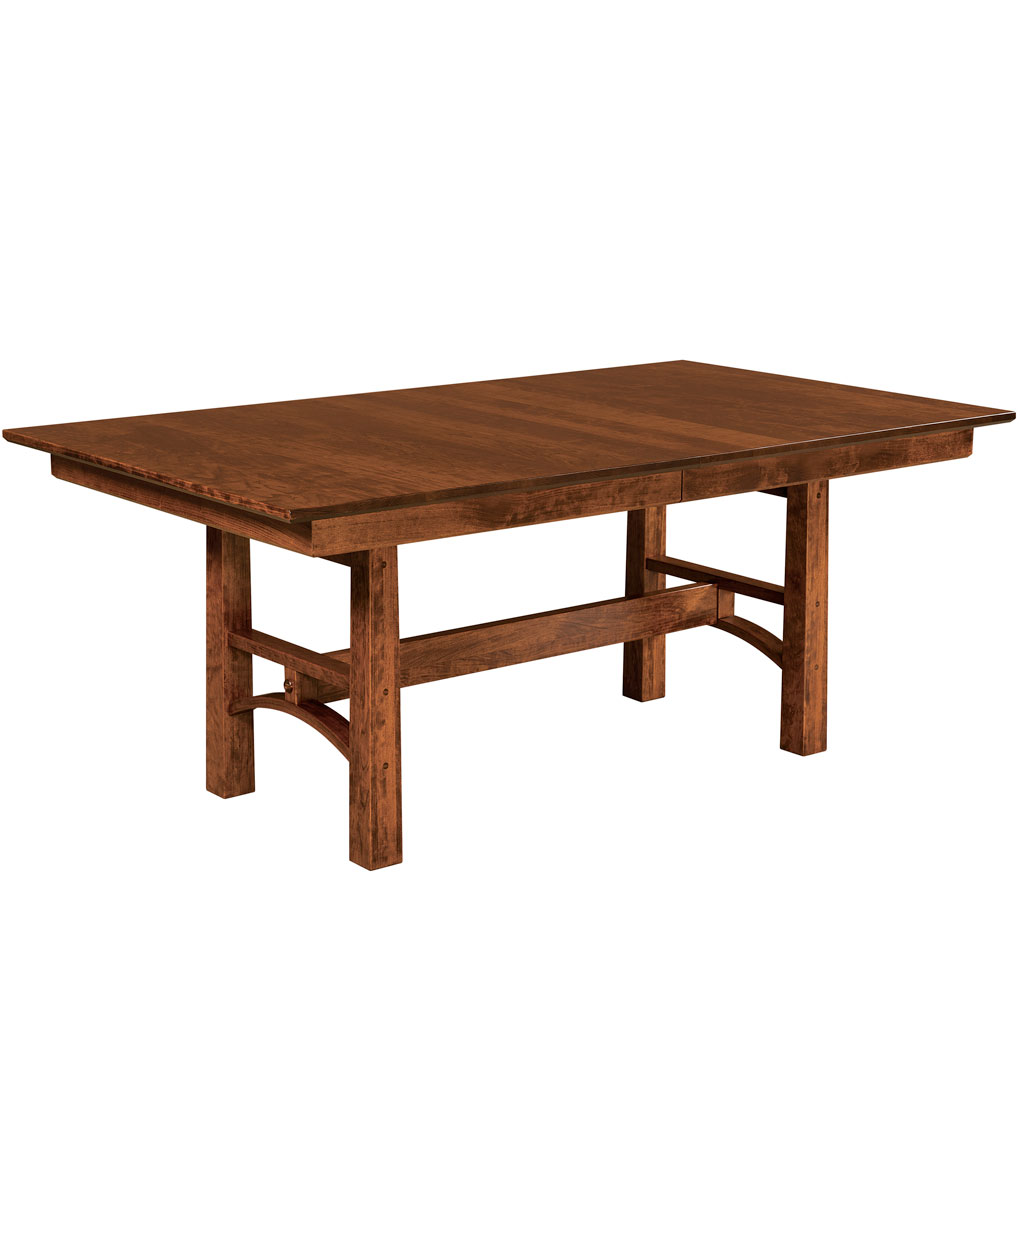 Design Trestle Table bridgeport trestle table amish direct furniture bridgeport